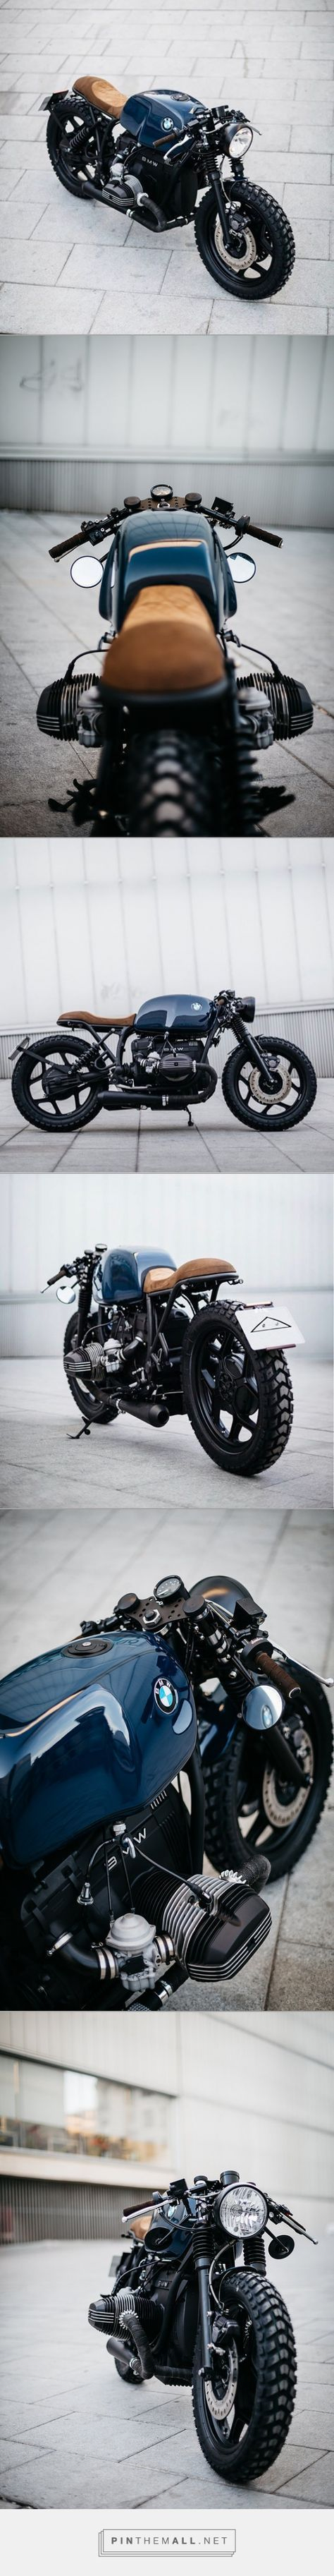 ROA Motorcycles BMW R80 [CFCM]Call today or stop by for a tour of our facility! Indoor Units Available! Ideal for Outdoor gear, Furniture, Antiques, Collectibles, etc. 505-275-2825